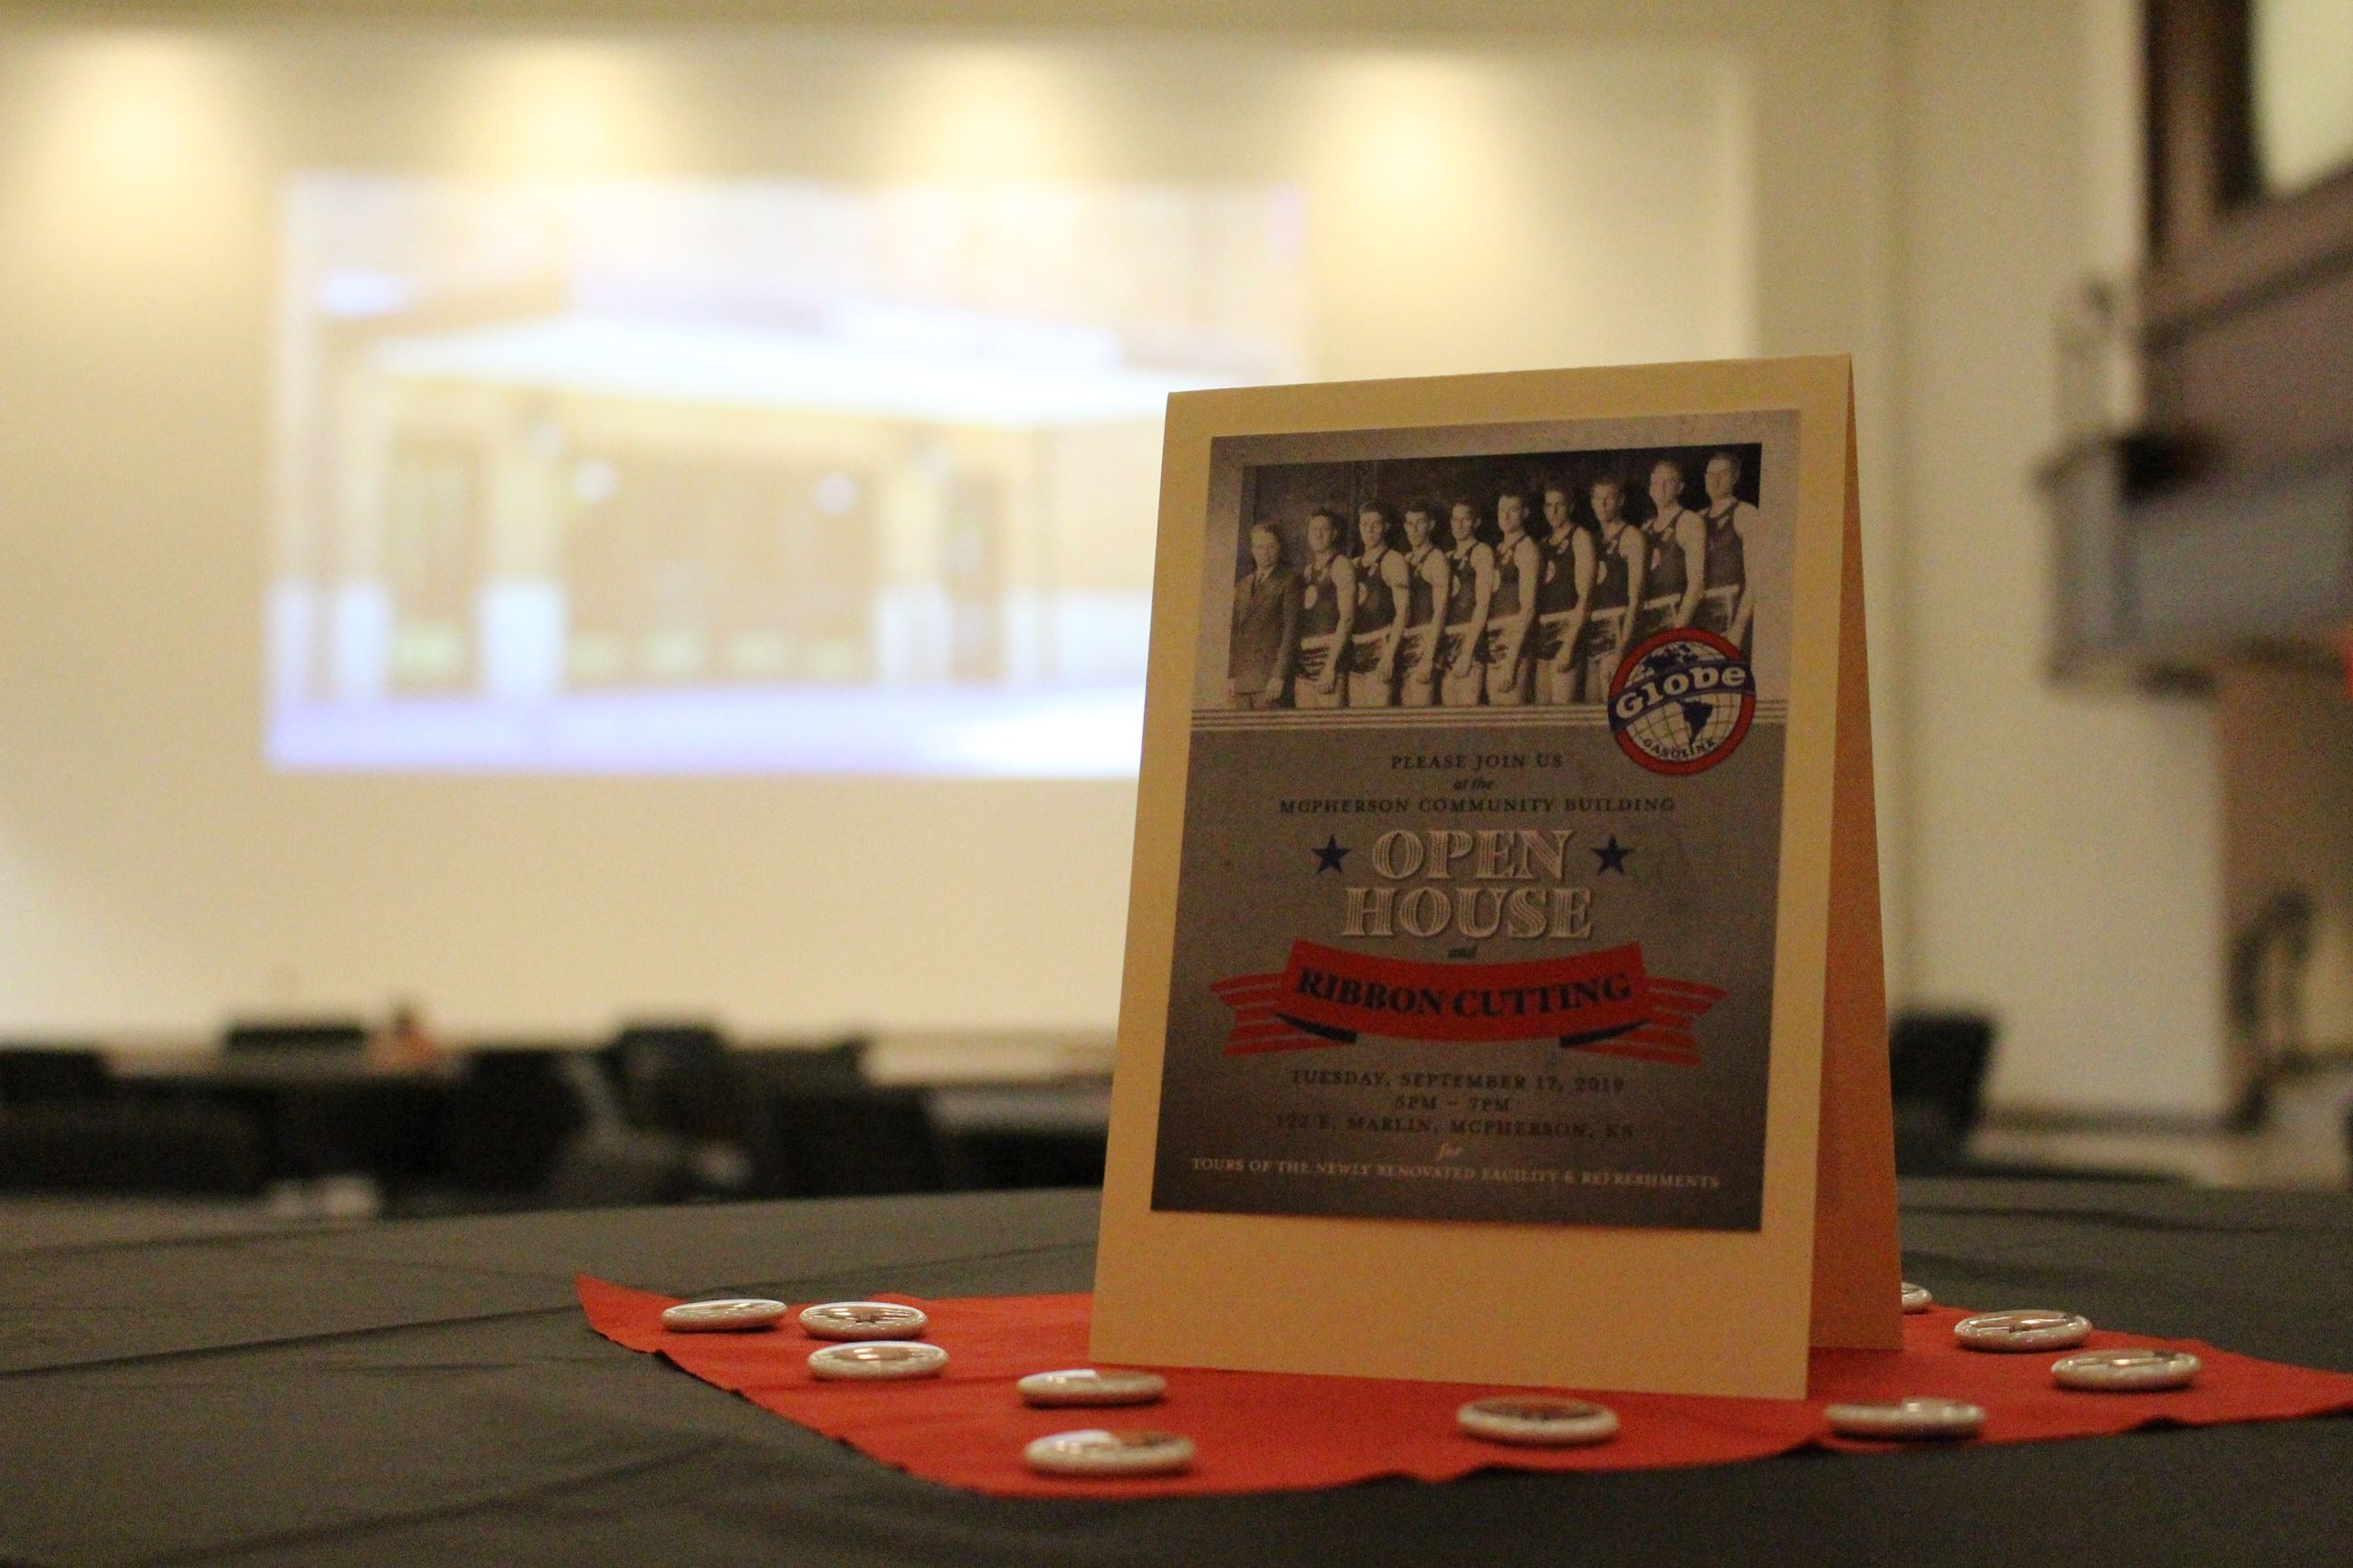 Table decoration featuring the McPherson Globe Refiners basketball team used for the community build